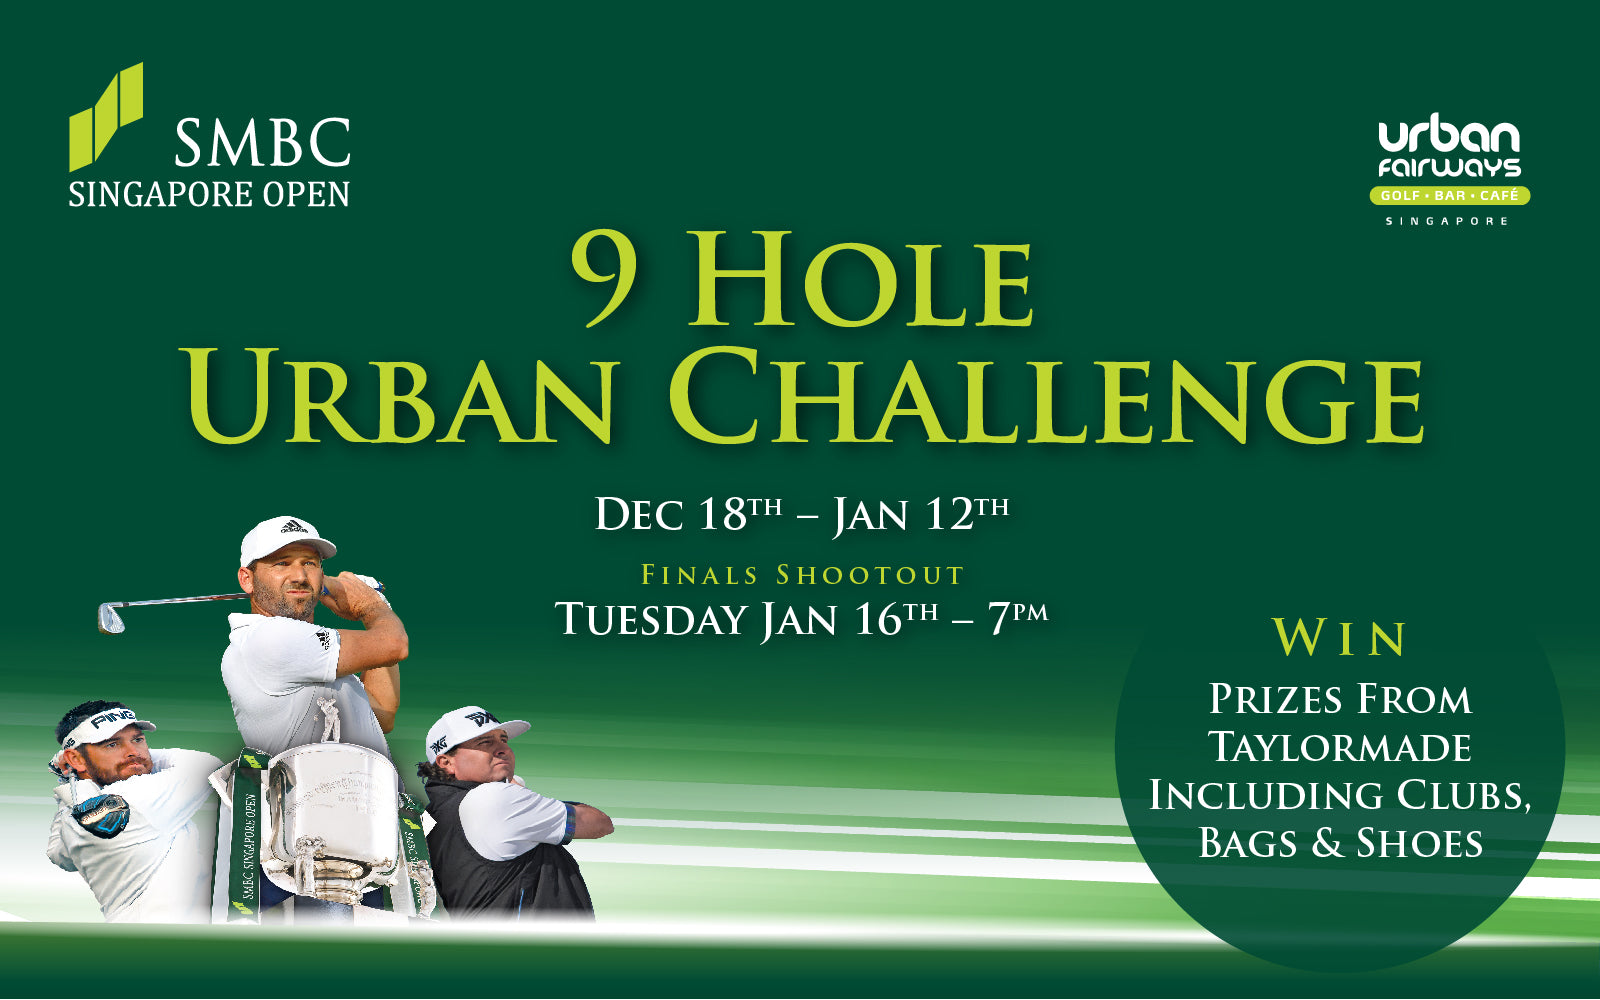 SMBC SINGAPORE OPEN 2018 - 9 HOLE URBAN CHALLENGE